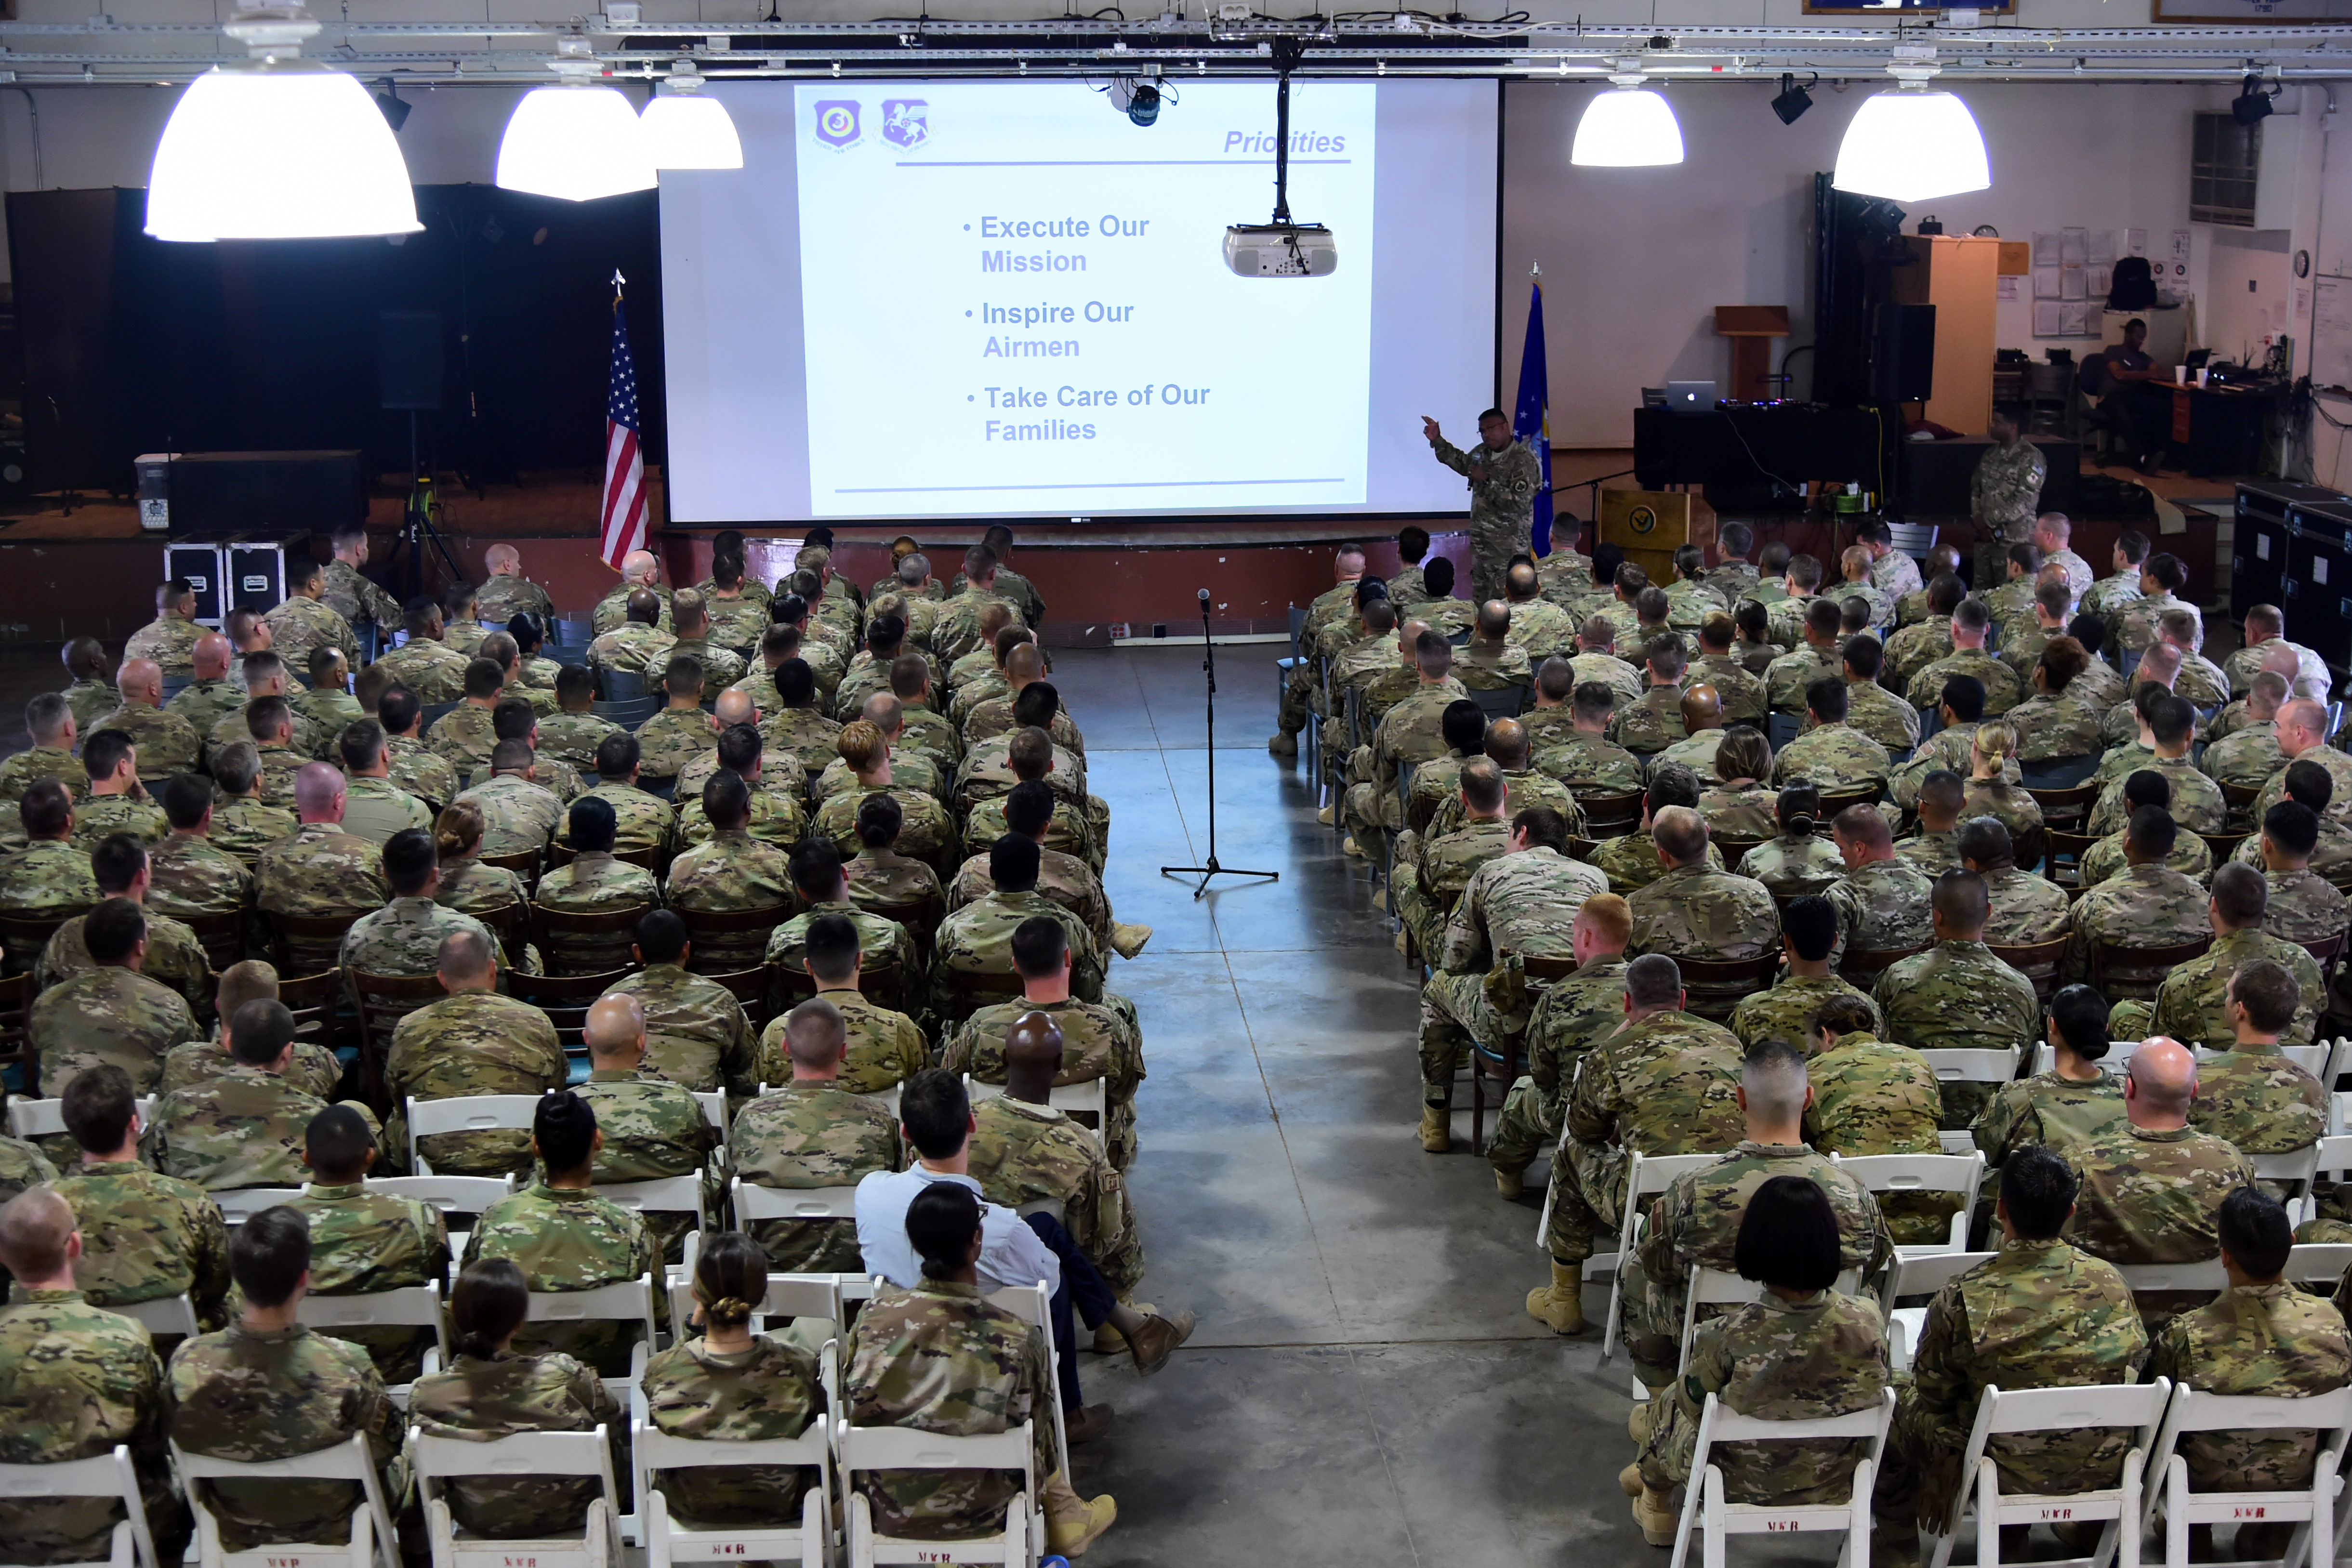 Lt. Gen. Richard Clark, commander of the 3rd Air Force and 17th Expeditionary Air Force, addresses active, reserve and National Guard Airmen while visiting Camp Lemonnier, Djibouti April 12, 2017. The visit allowed Clark and accompanying leadership to gain a better understanding of the Air Force mission in East Africa, and express their appreciation to the many U.S. Airmen deployed throughout the Horn of Africa. (U.S. Air National Guard photo by Master Sgt. Paul Gorman)